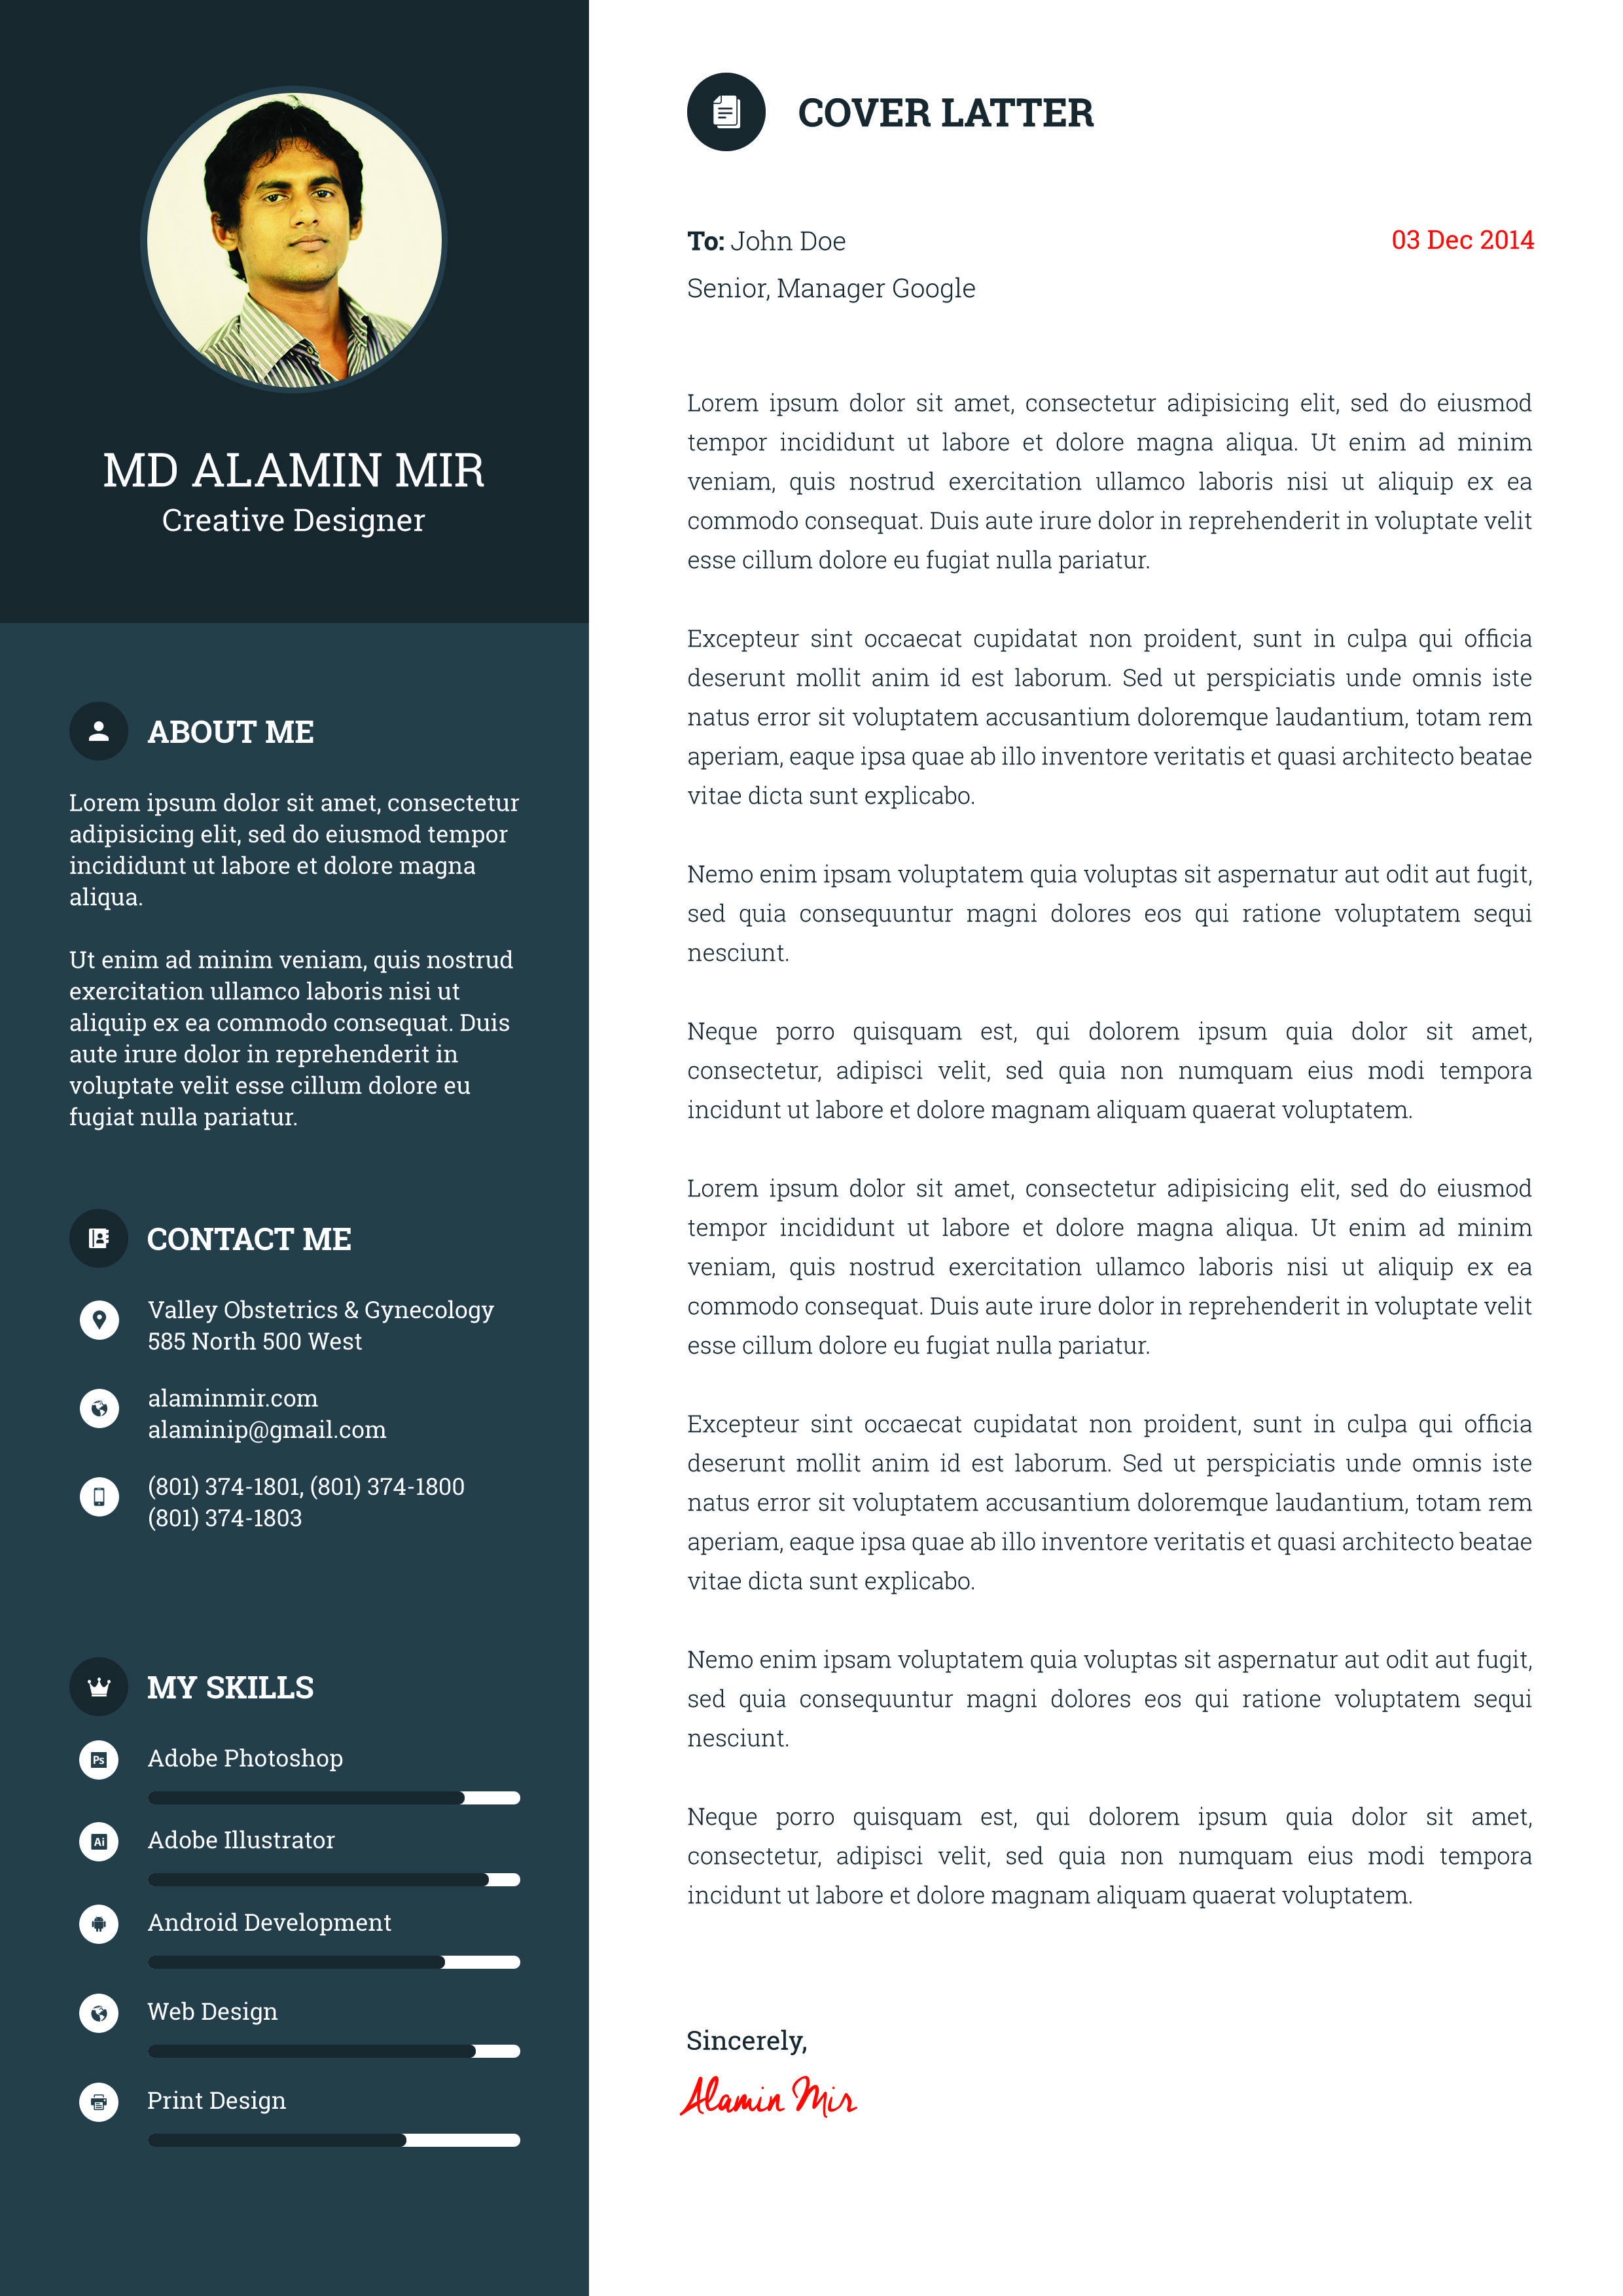 example 7 I will design Resume, awesome Cv for you for